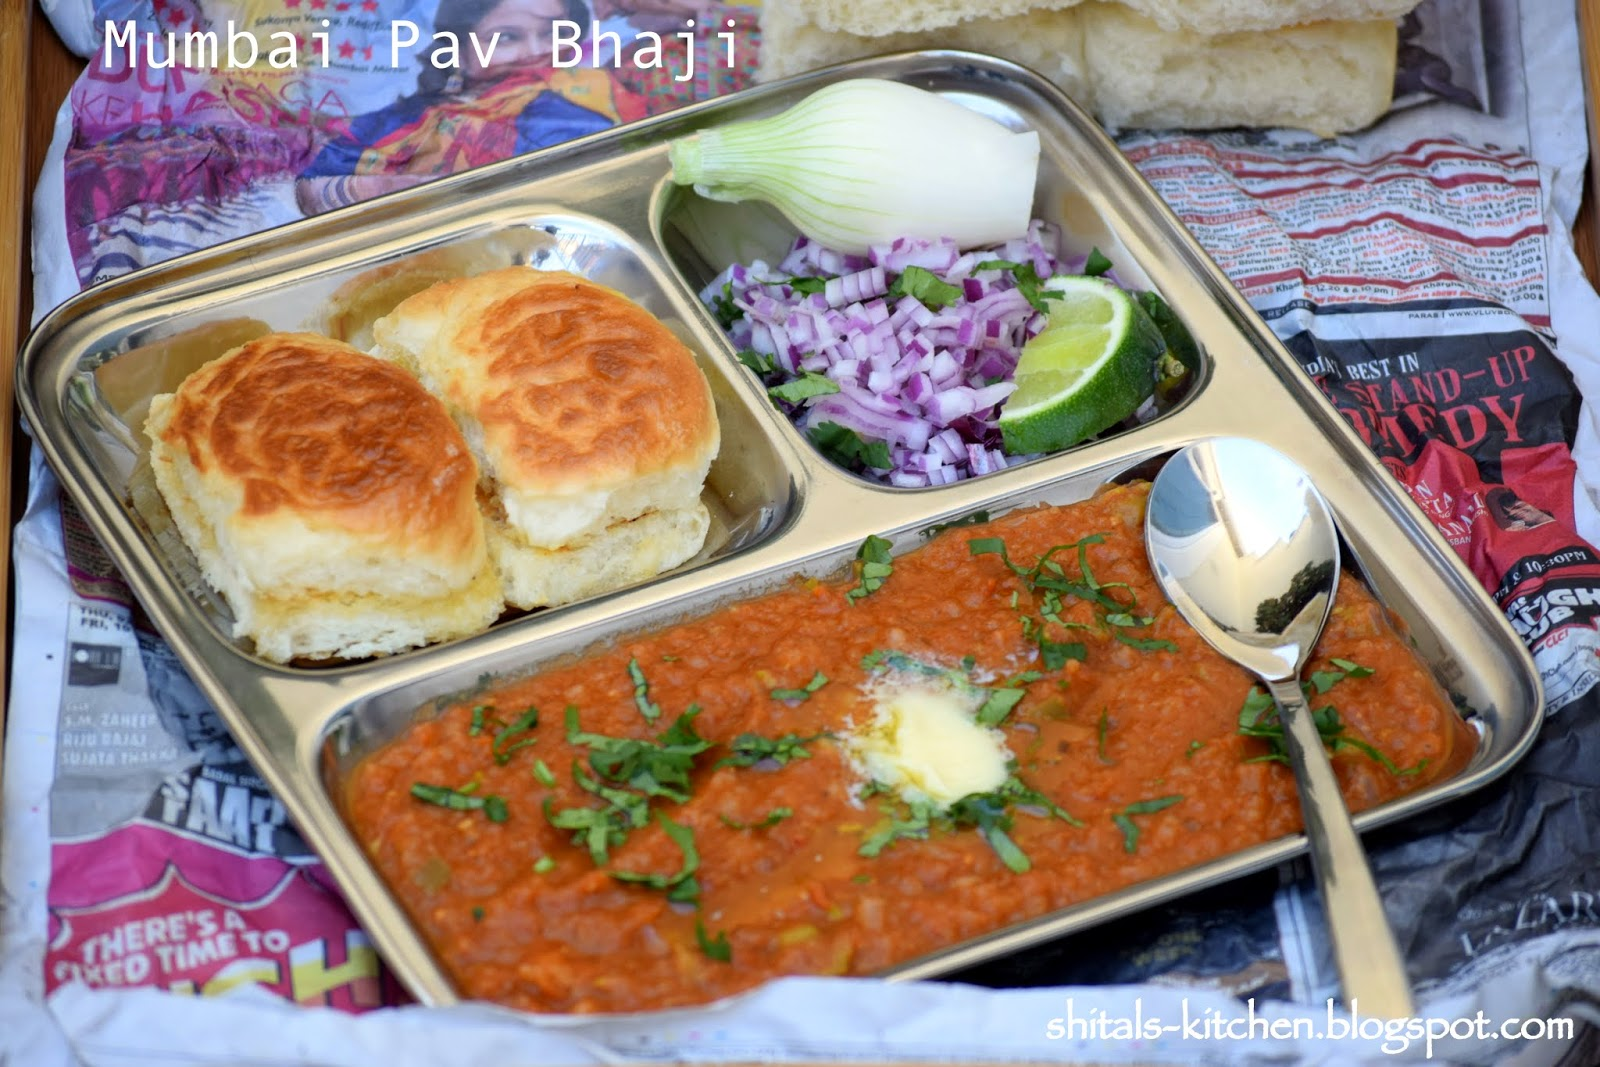 15 indian vegetarian dinner recipes from popular bloggers antos pav bhaji another favorite of most mumbaites people in mumbai bhaji is mixed vegetable cooked with spices is served along with pavbun a simple meal of forumfinder Images